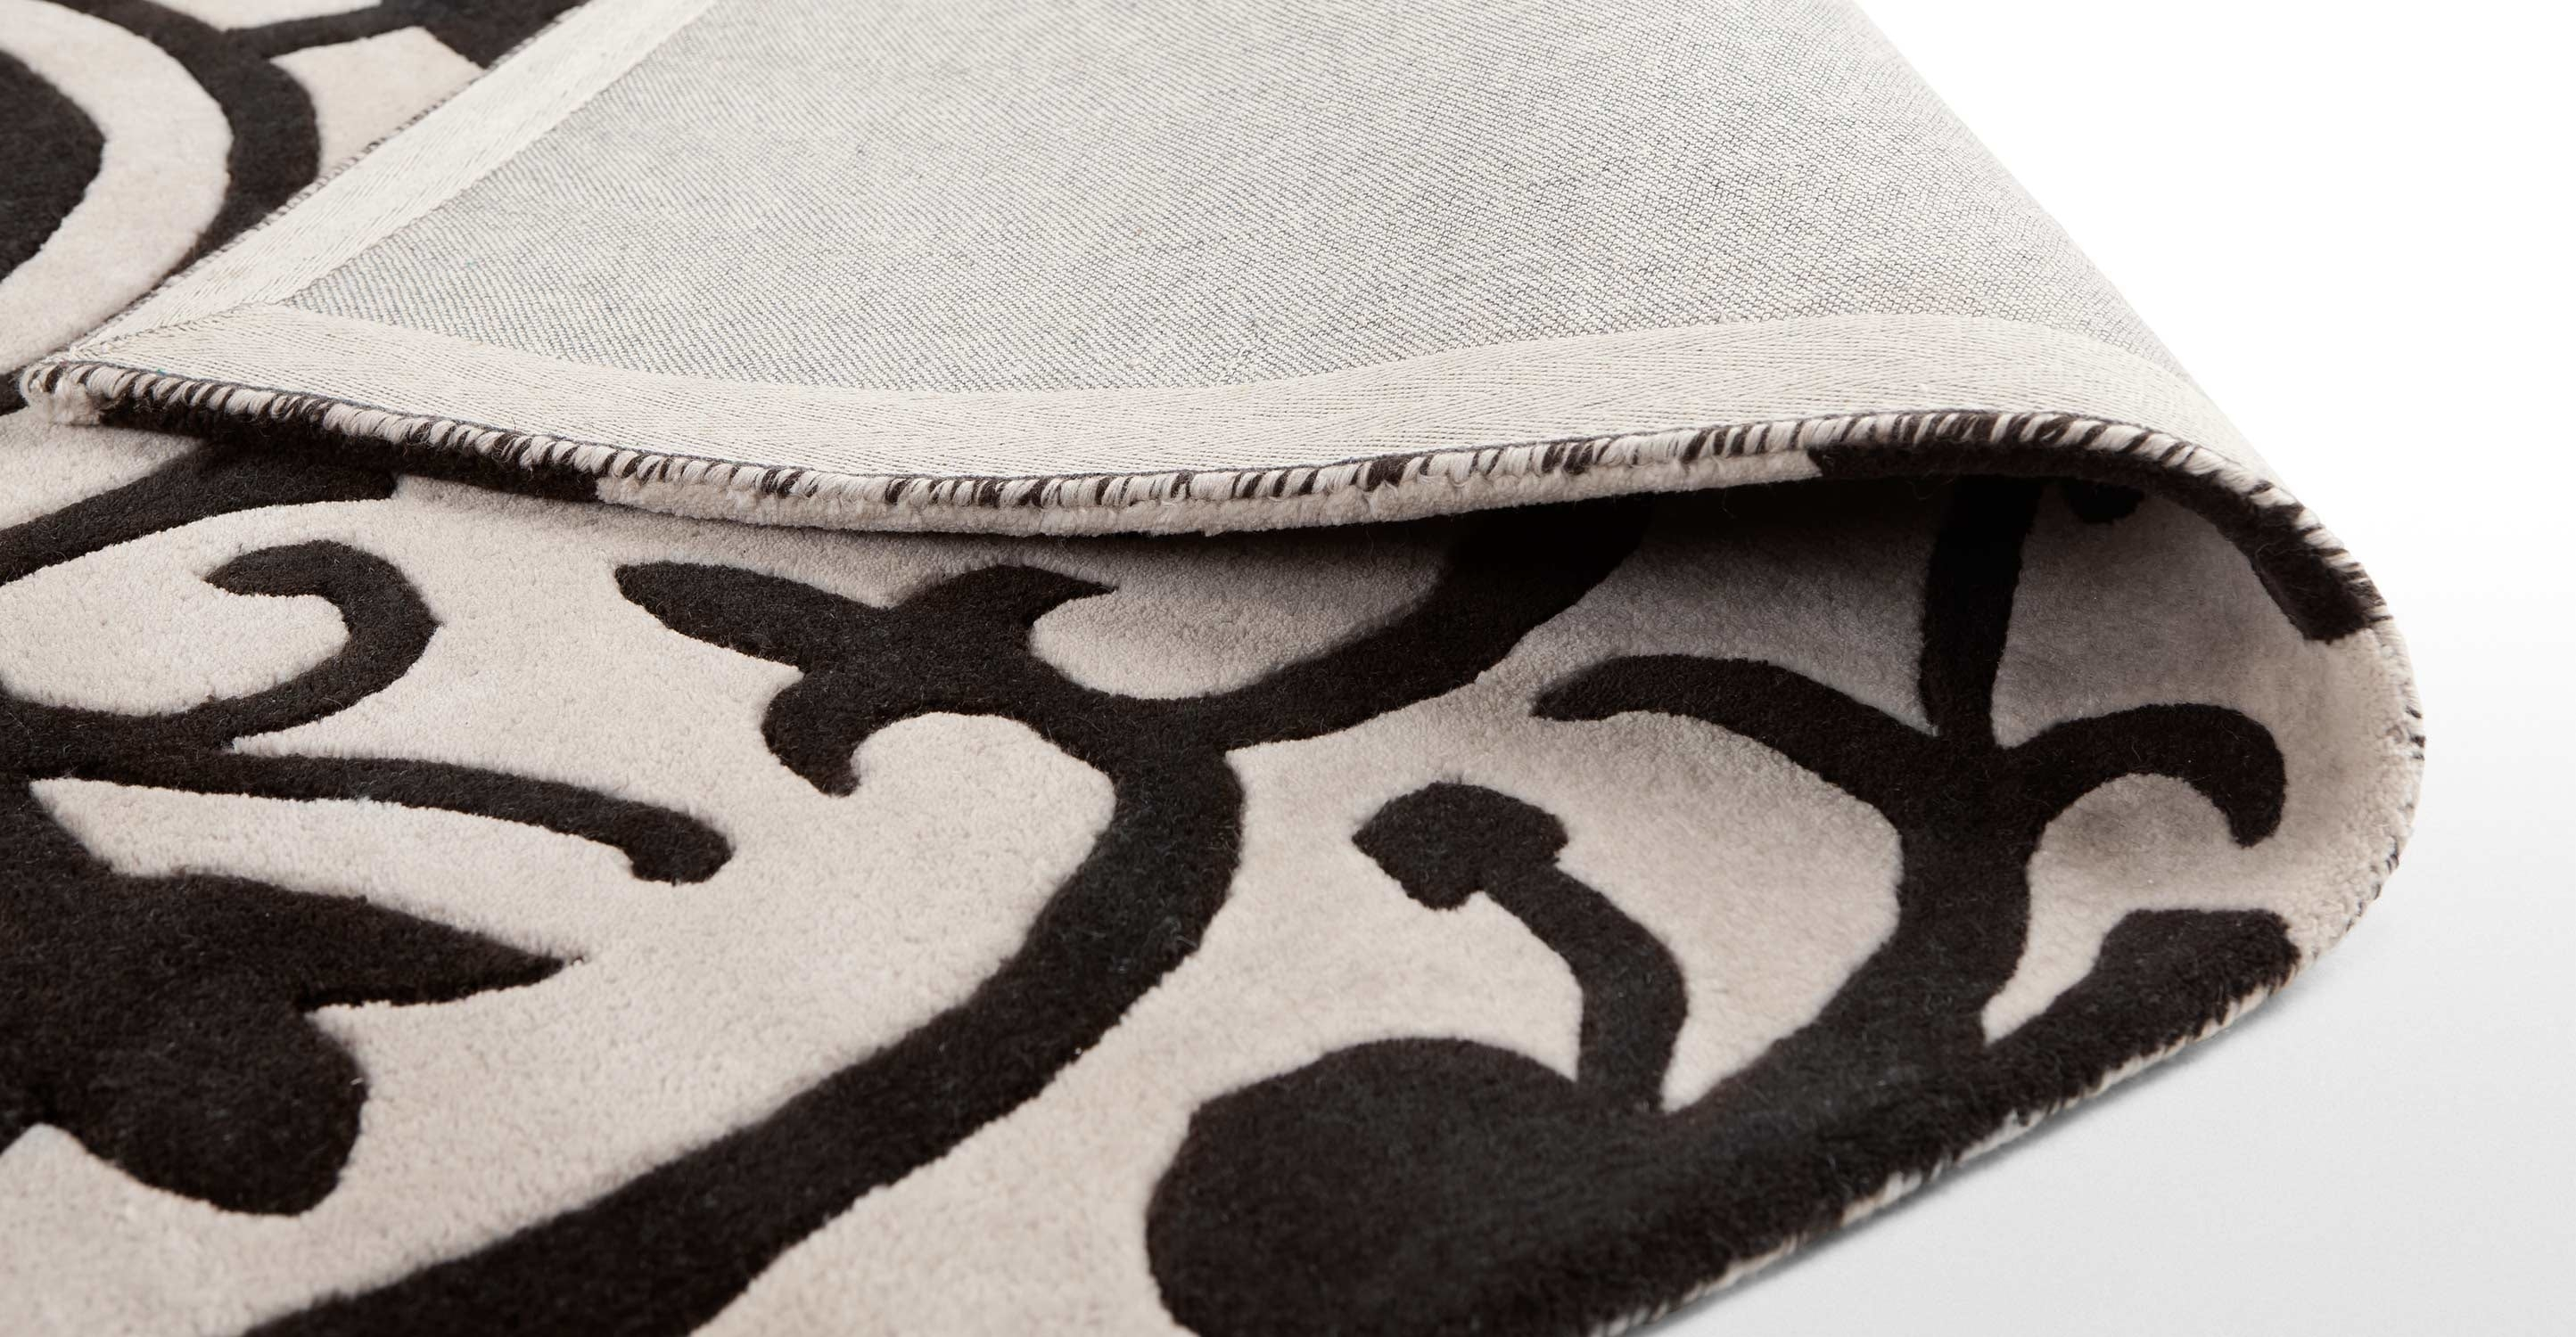 Moroc Rug 170 X 240cm In Cream And Black Made Intended For Cream And Black Rugs (Image 13 of 15)